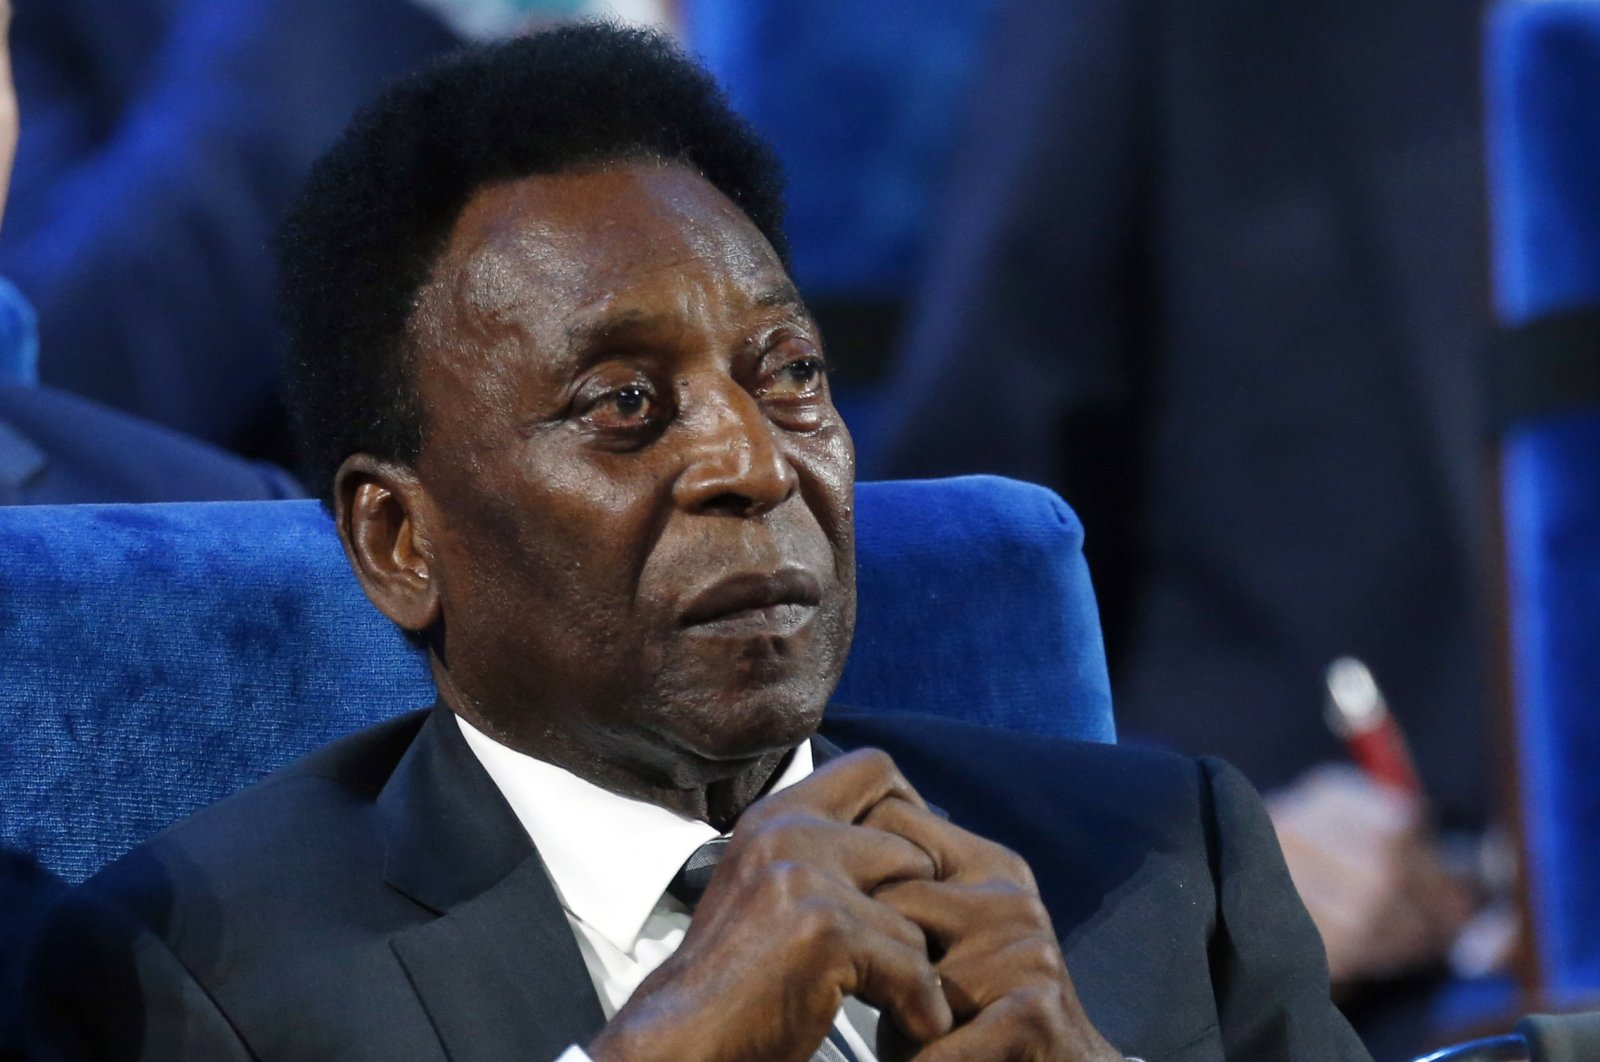 Brazilian football legend Pele attends the 2018 soccer World Cup draw in the Kremlin in Moscow, Russia, Dec. 1, 2017. (AP Photo)